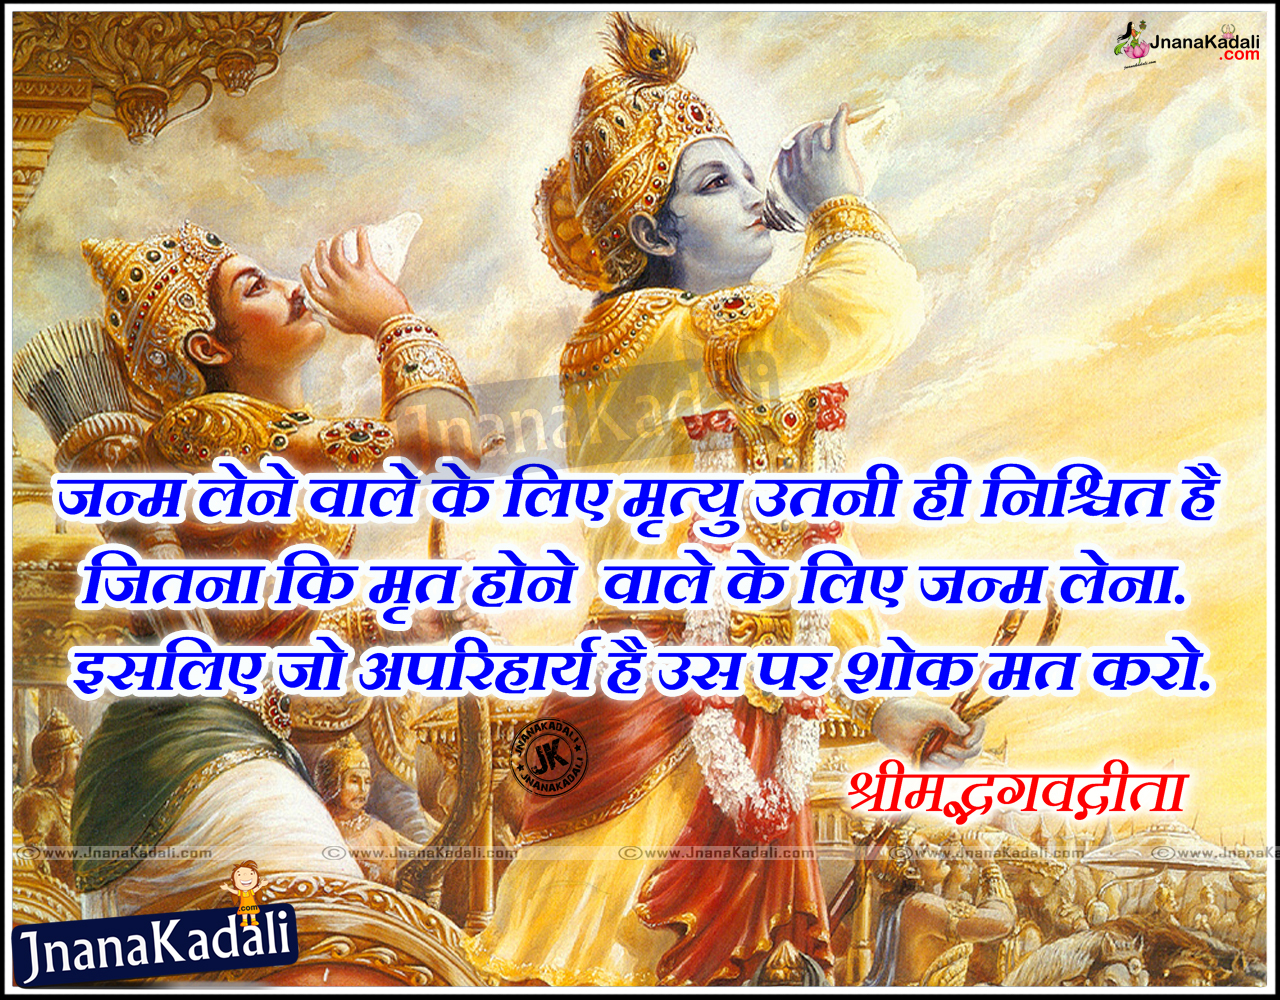 Bhagwat gita in Hindi pdf Read